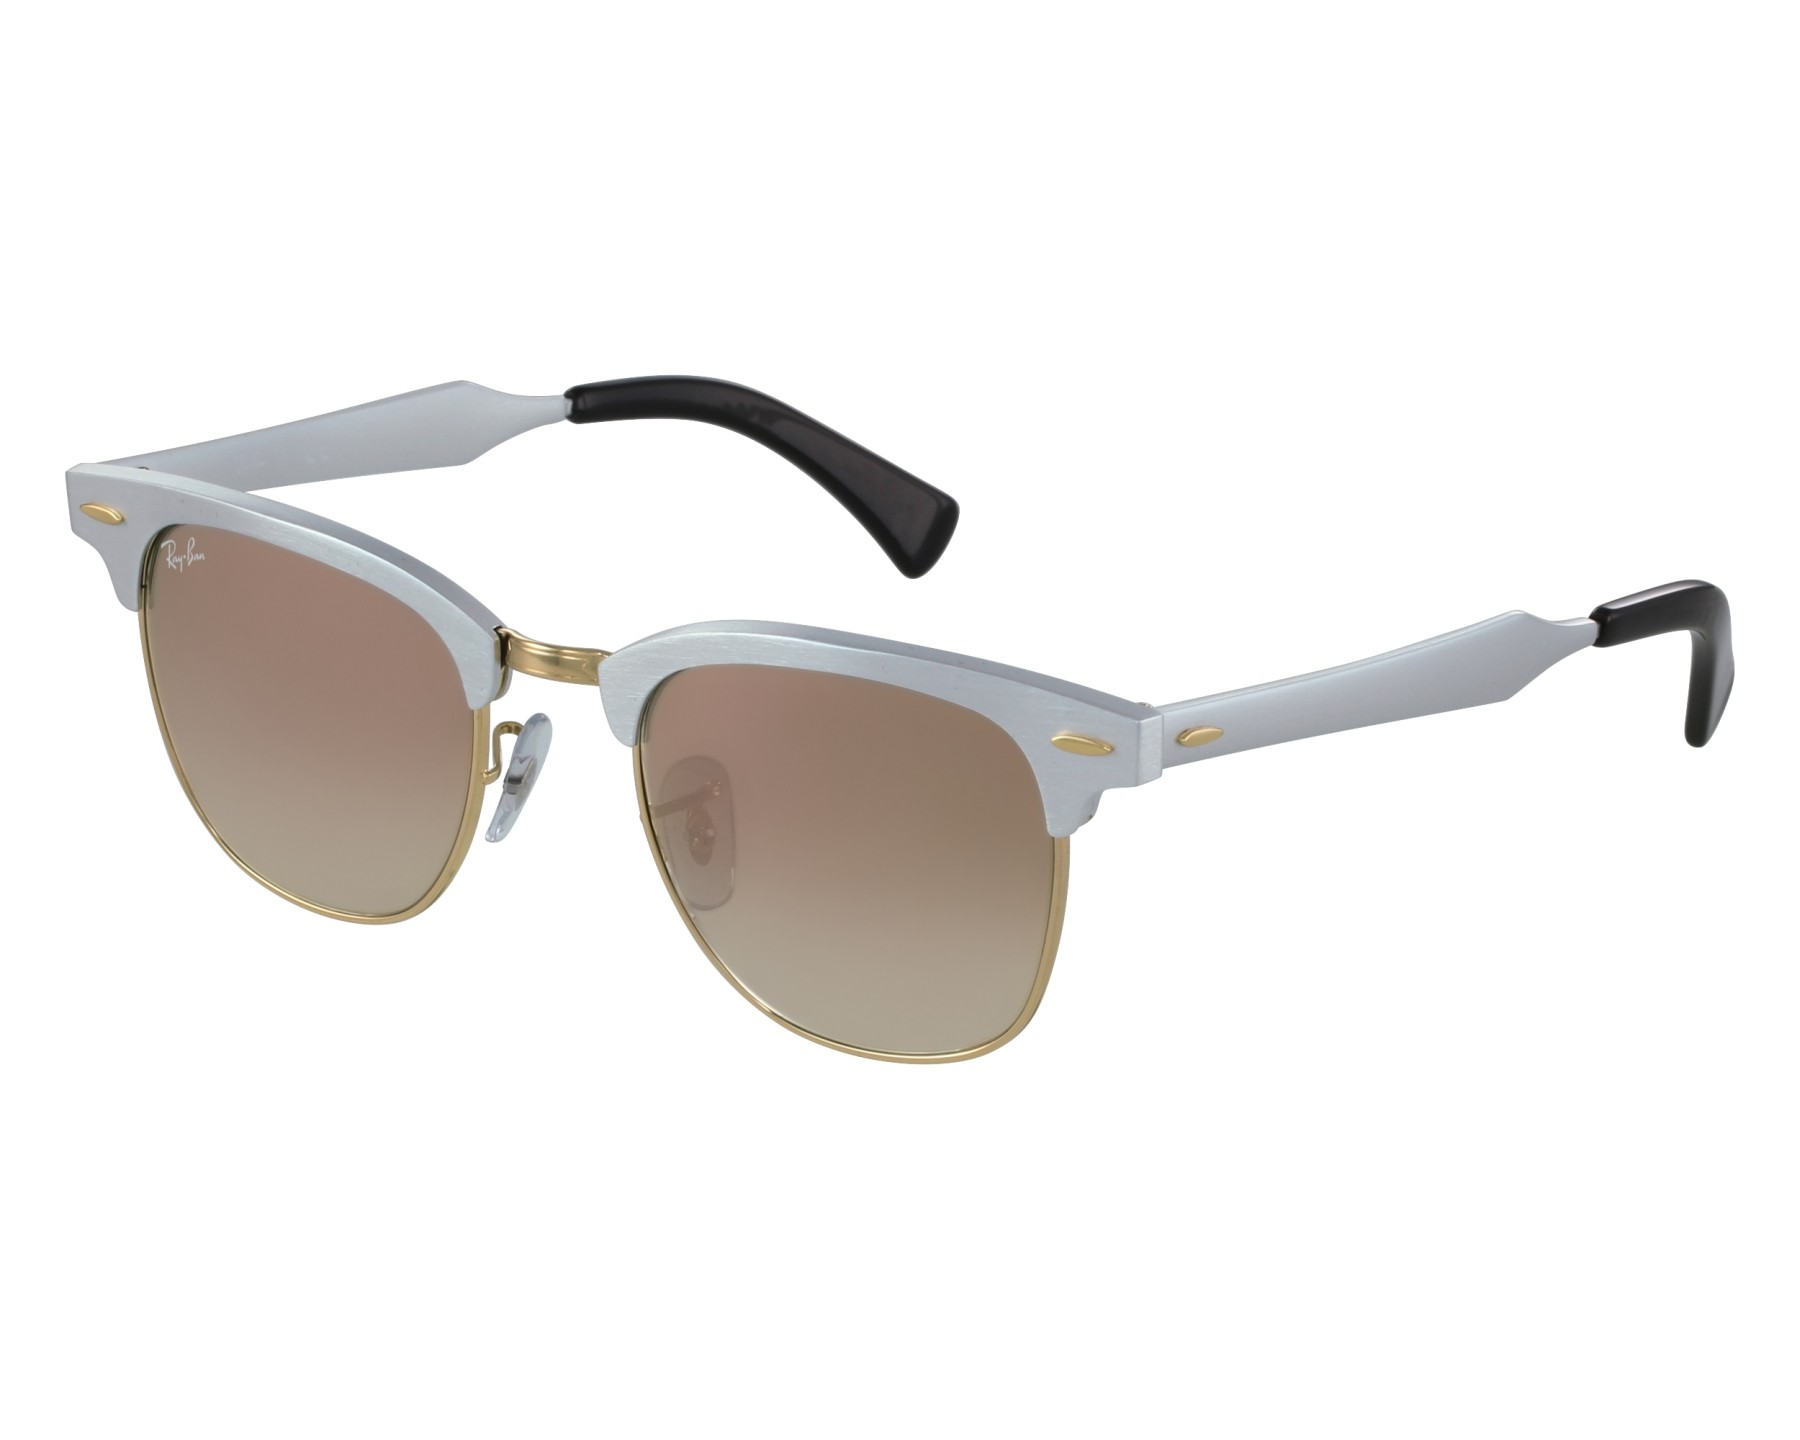 db4ec5c9c8 Sunglasses Ray-Ban RB-3507 137 7O 49-21 Silver Gold front